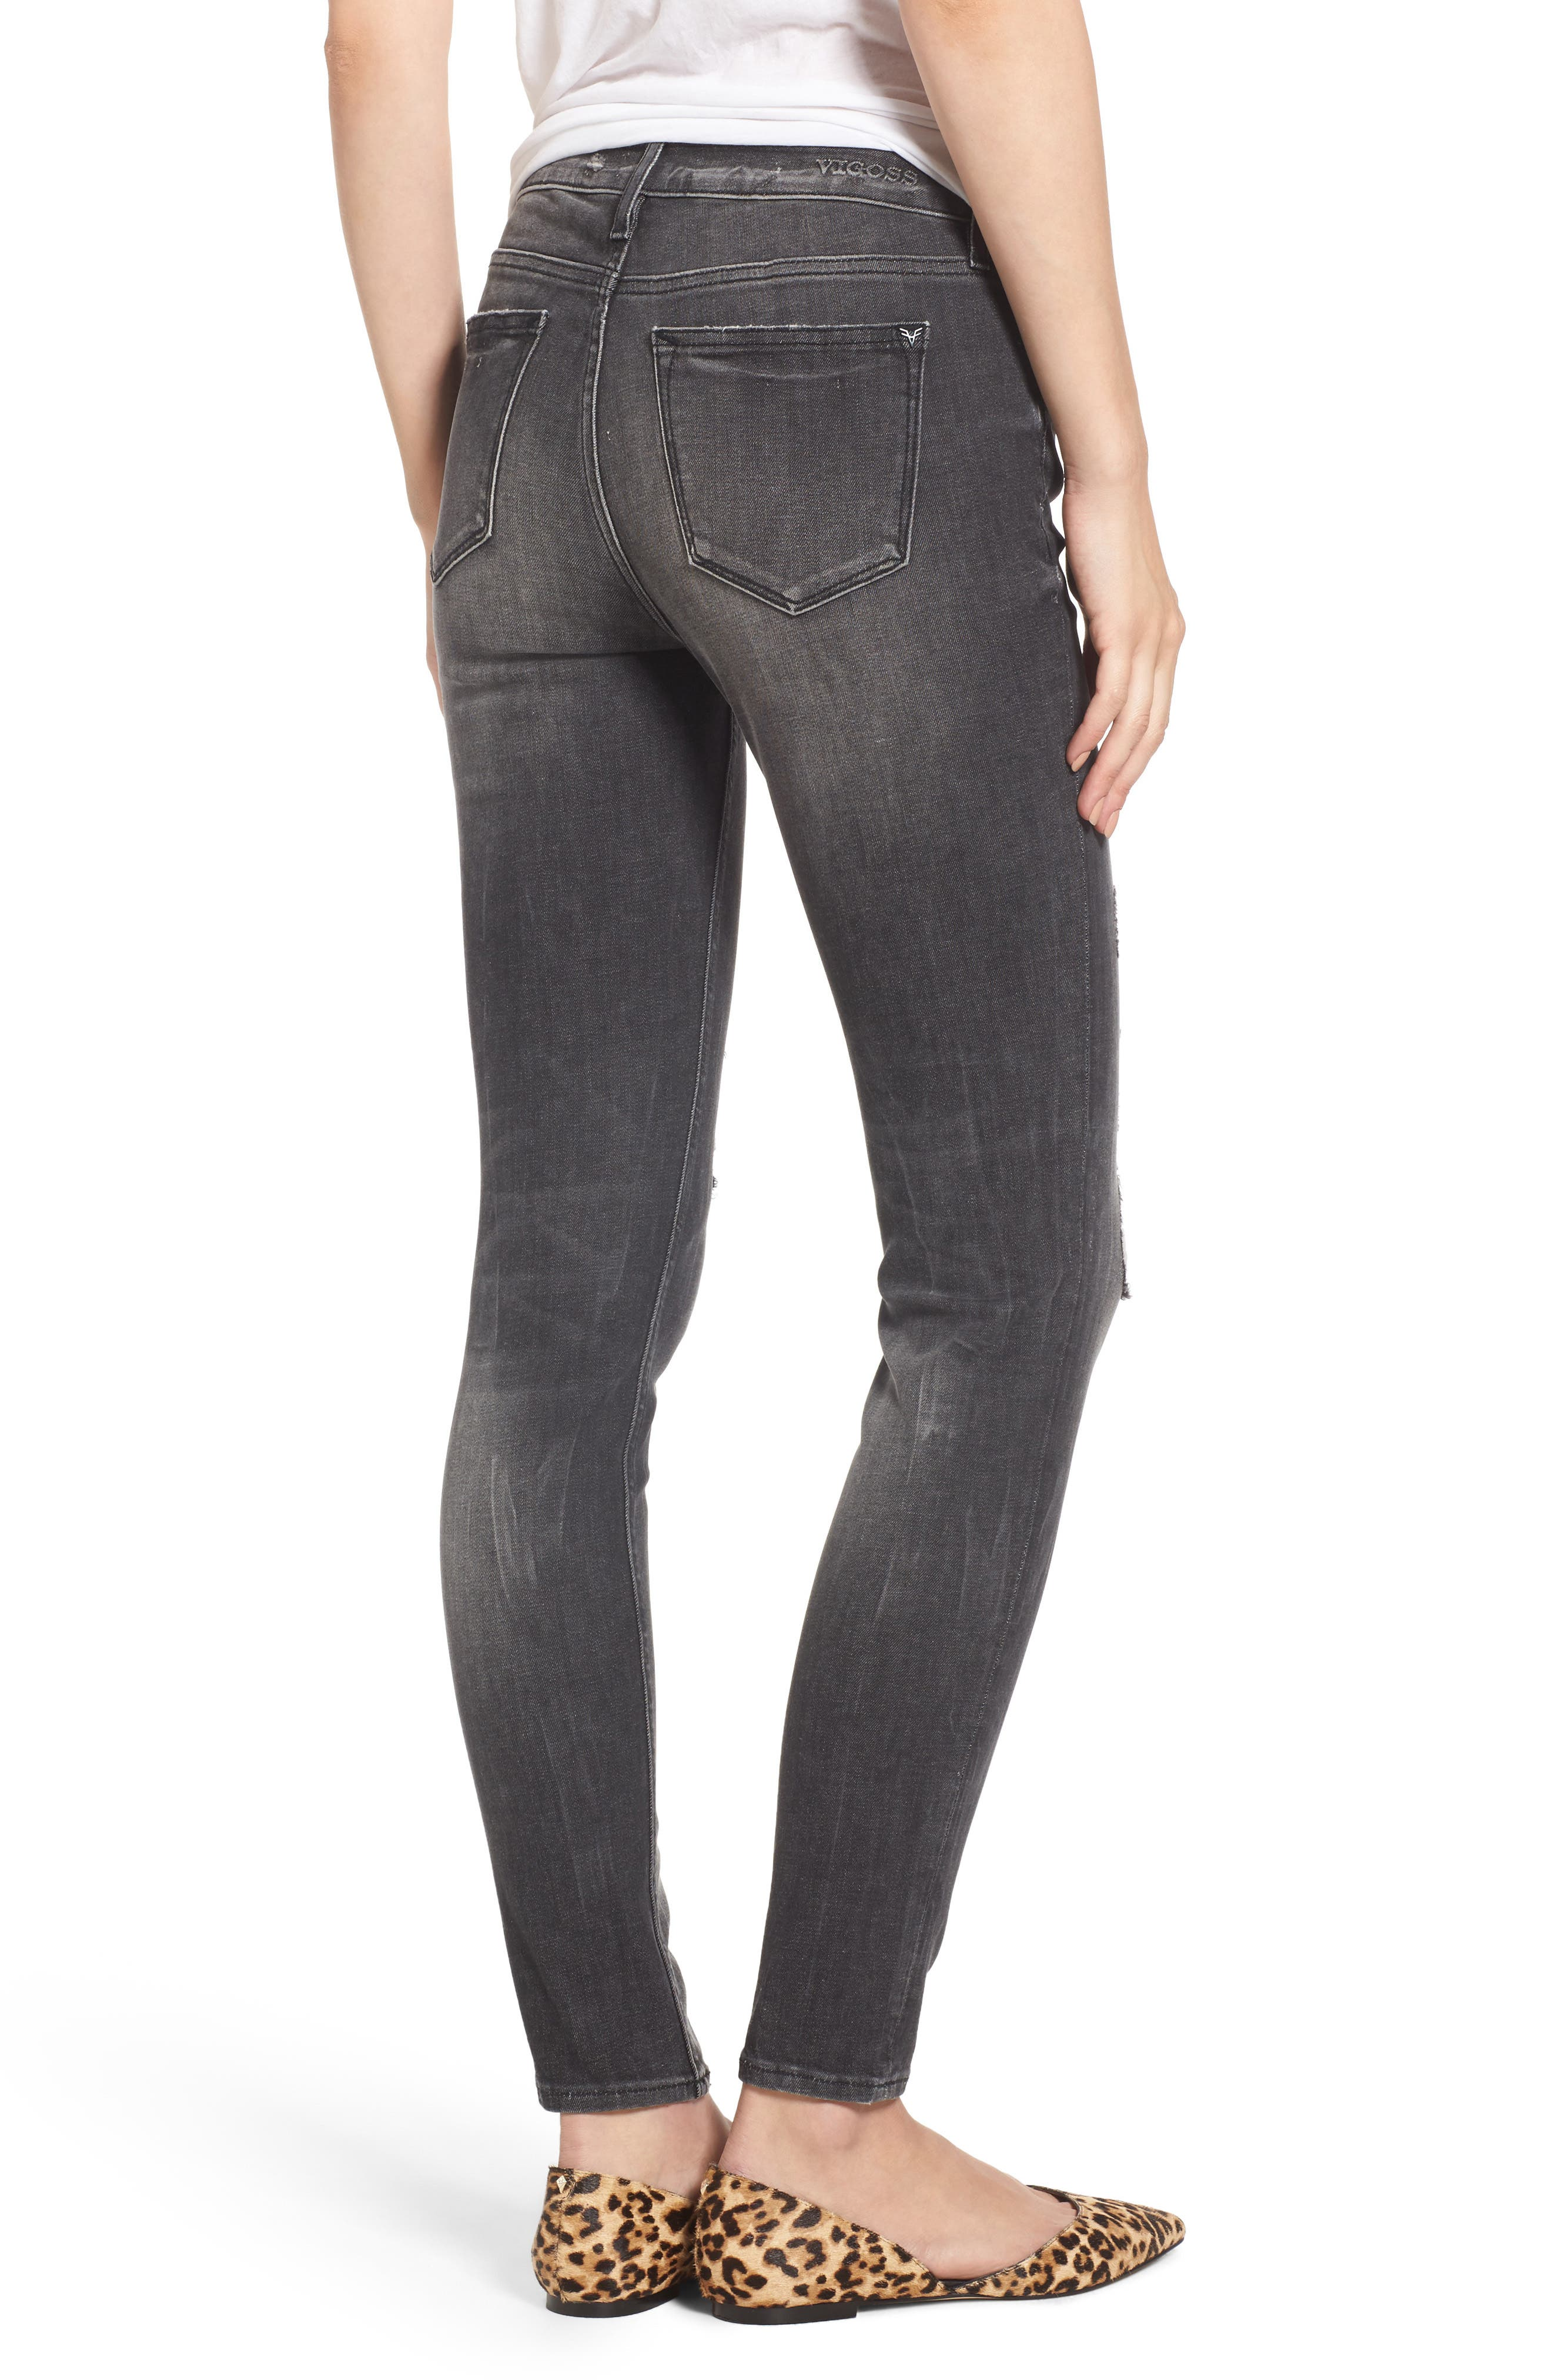 Jagger Ripped Skinny Jeans,                             Alternate thumbnail 2, color,                             020